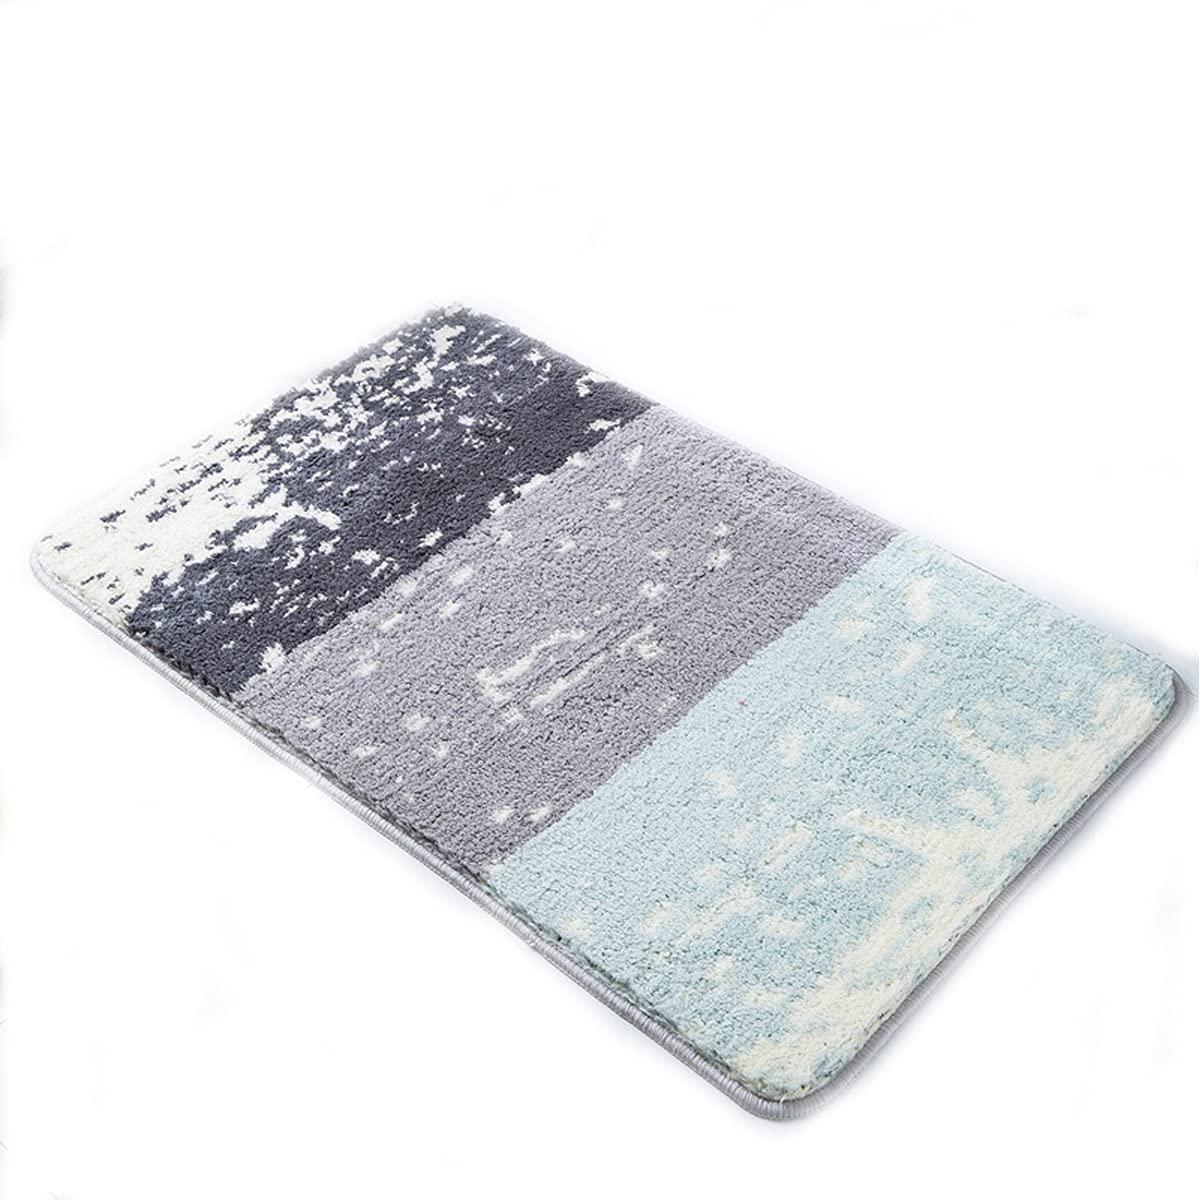 IUwnHceE Good Selling Bathroom Absorbent Doo Mats Floor San Diego Mall Entrance Our shop OFFers the best service